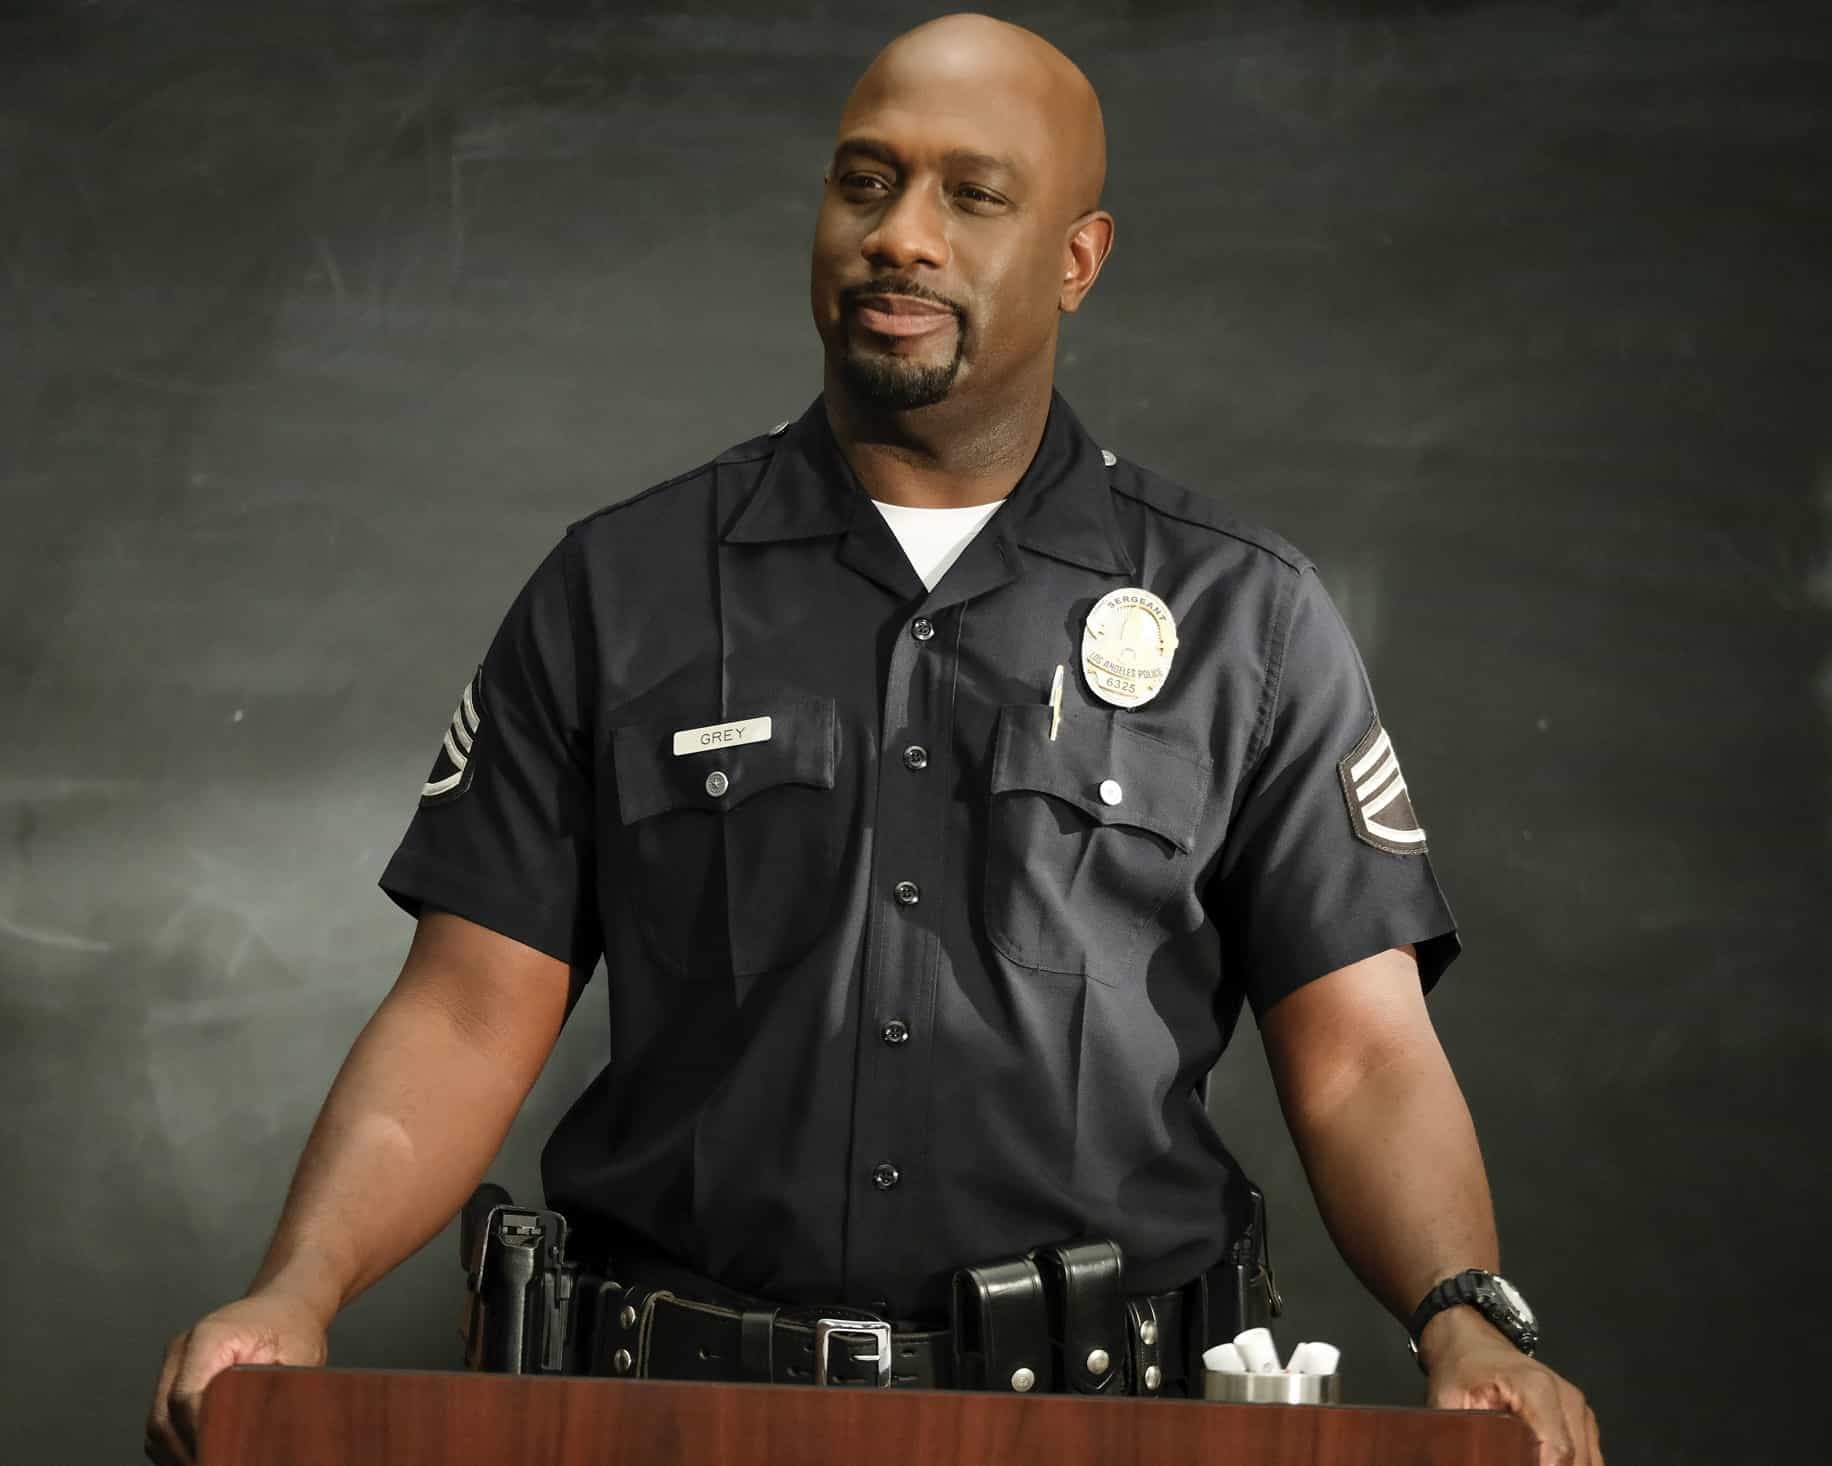 """THE ROOKIE Season 3 Episode 14 - """"Threshold"""" – Officer Nolan mildly injures himself while chasing down a shoplifter and the local DA wants to charge the suspect with assault despite Nolan's wishes. Meanwhile, Lucy goes undercover, Lopez' wedding venue is seized by the FBI and Nolan meets his new neighbor on the season finale of """"The Rookie,"""" SUNDAY, MAY 16 (10:00-11:00 p.m. EDT), on ABC. (ABC/Erica Parise) RICHARD T. JONES"""